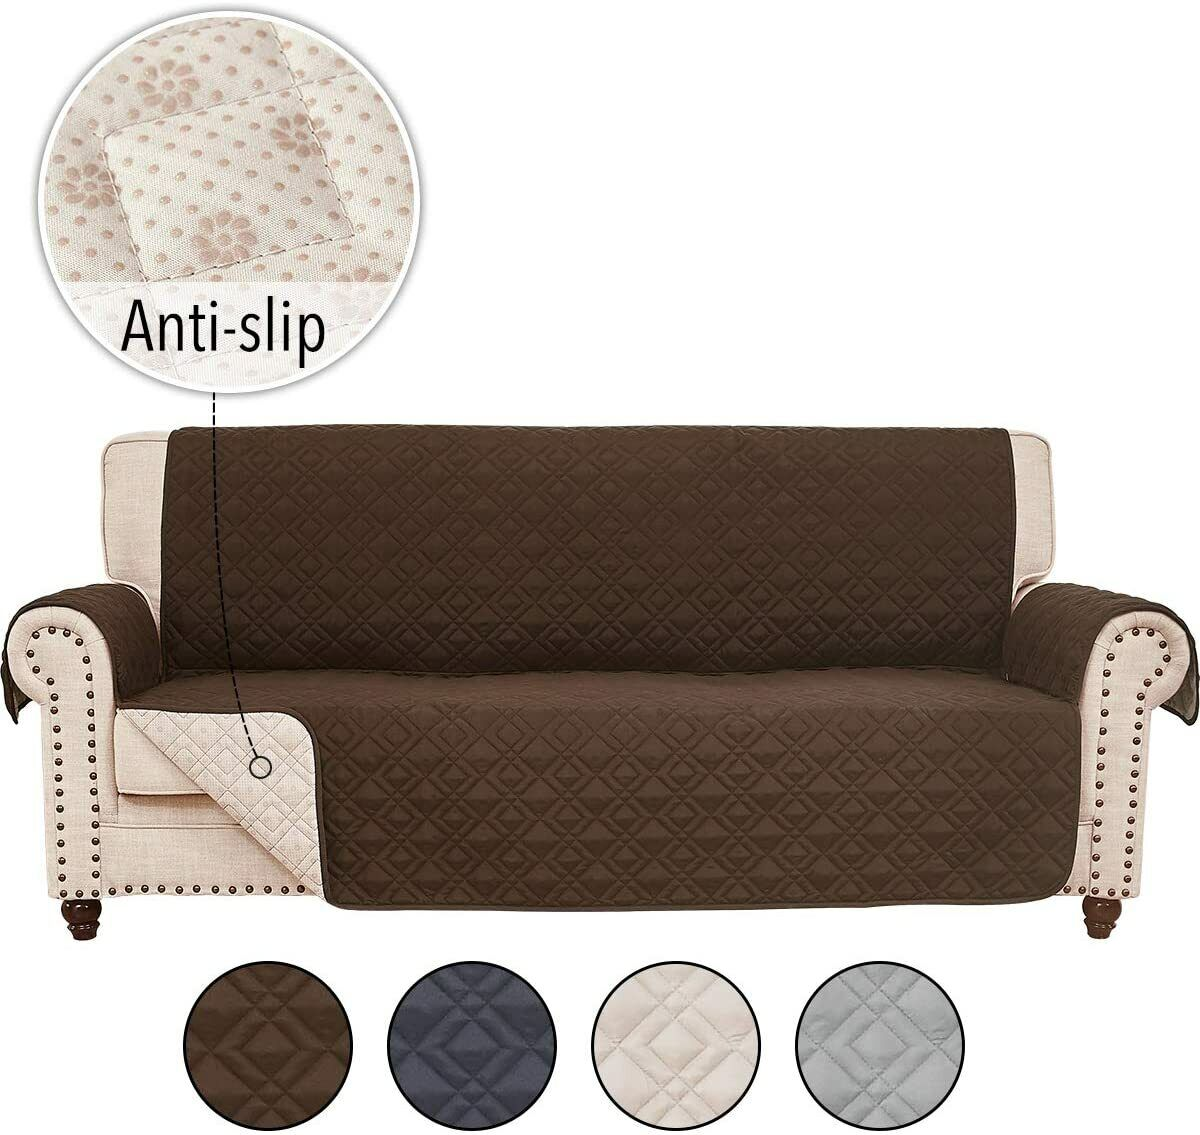 Anti Slip Sofa Couch Slipcover Cover For Leather Furniture Protector Pet Kid Mat Ebay